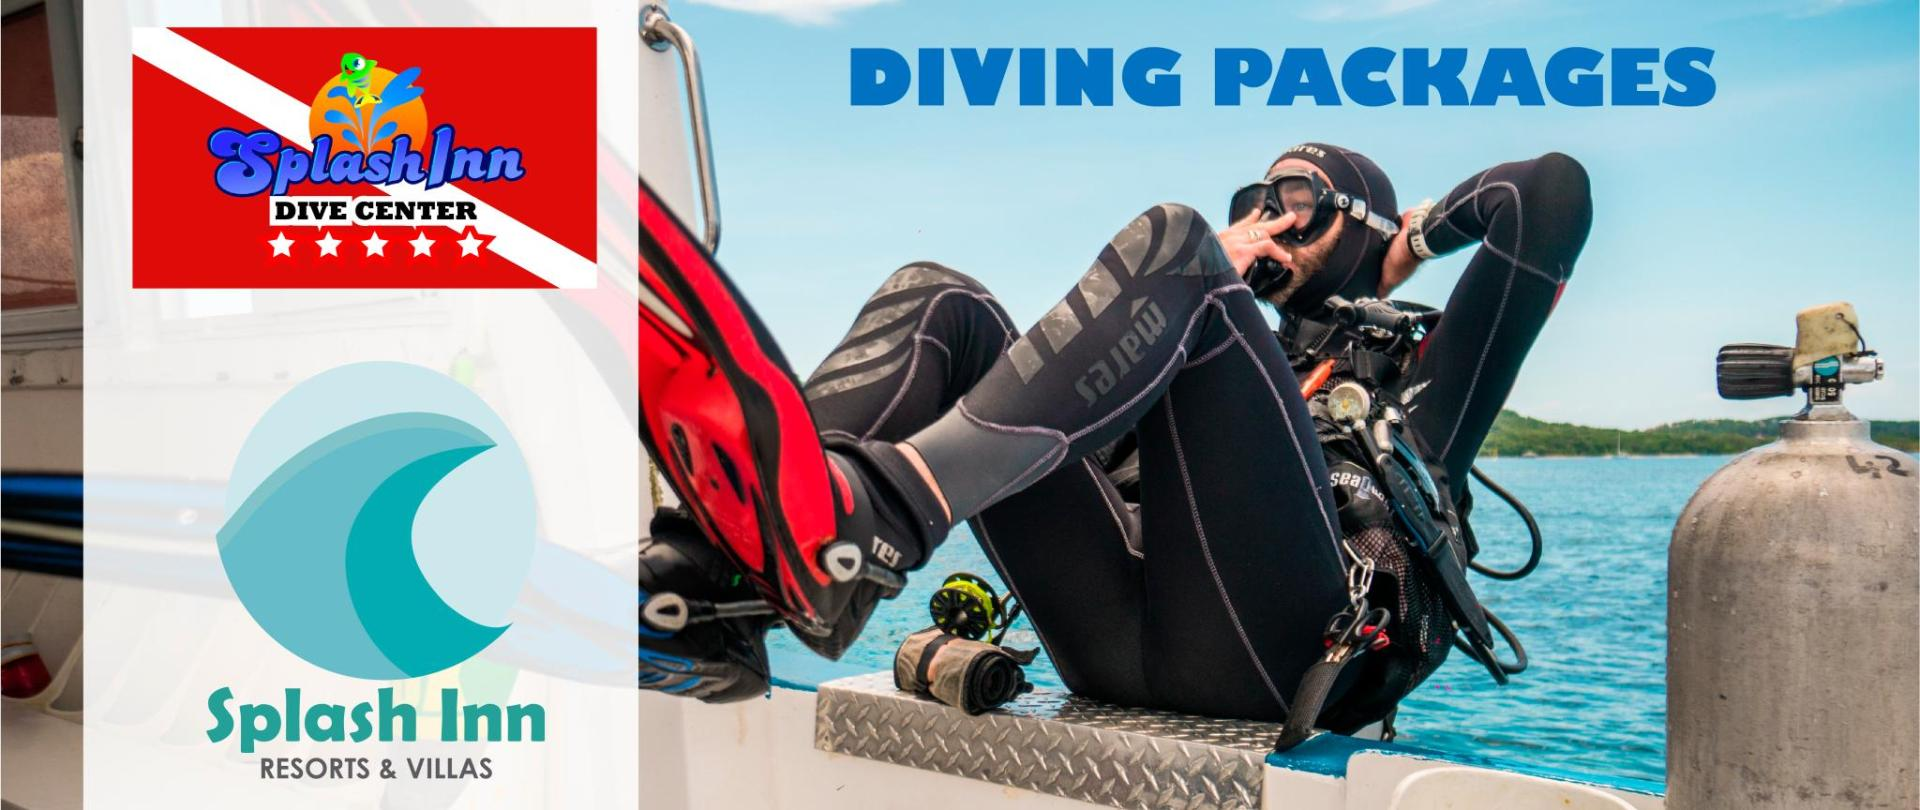 DIVING PACKAGES.jpg